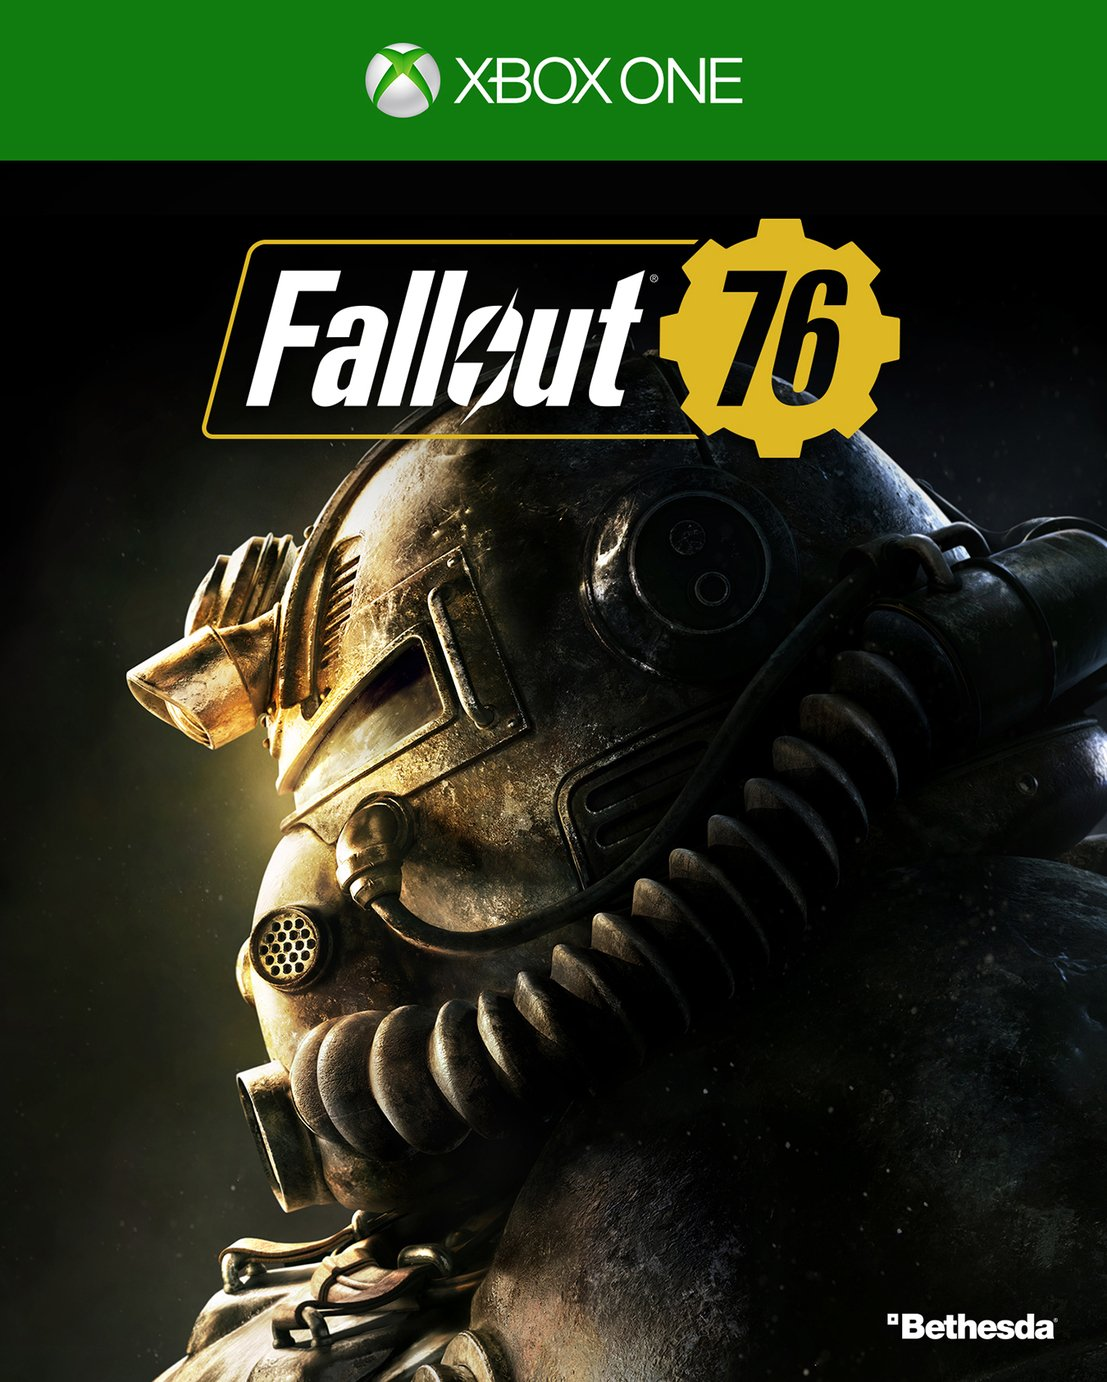 Fallout 76 Xbox One Pre-Order Game